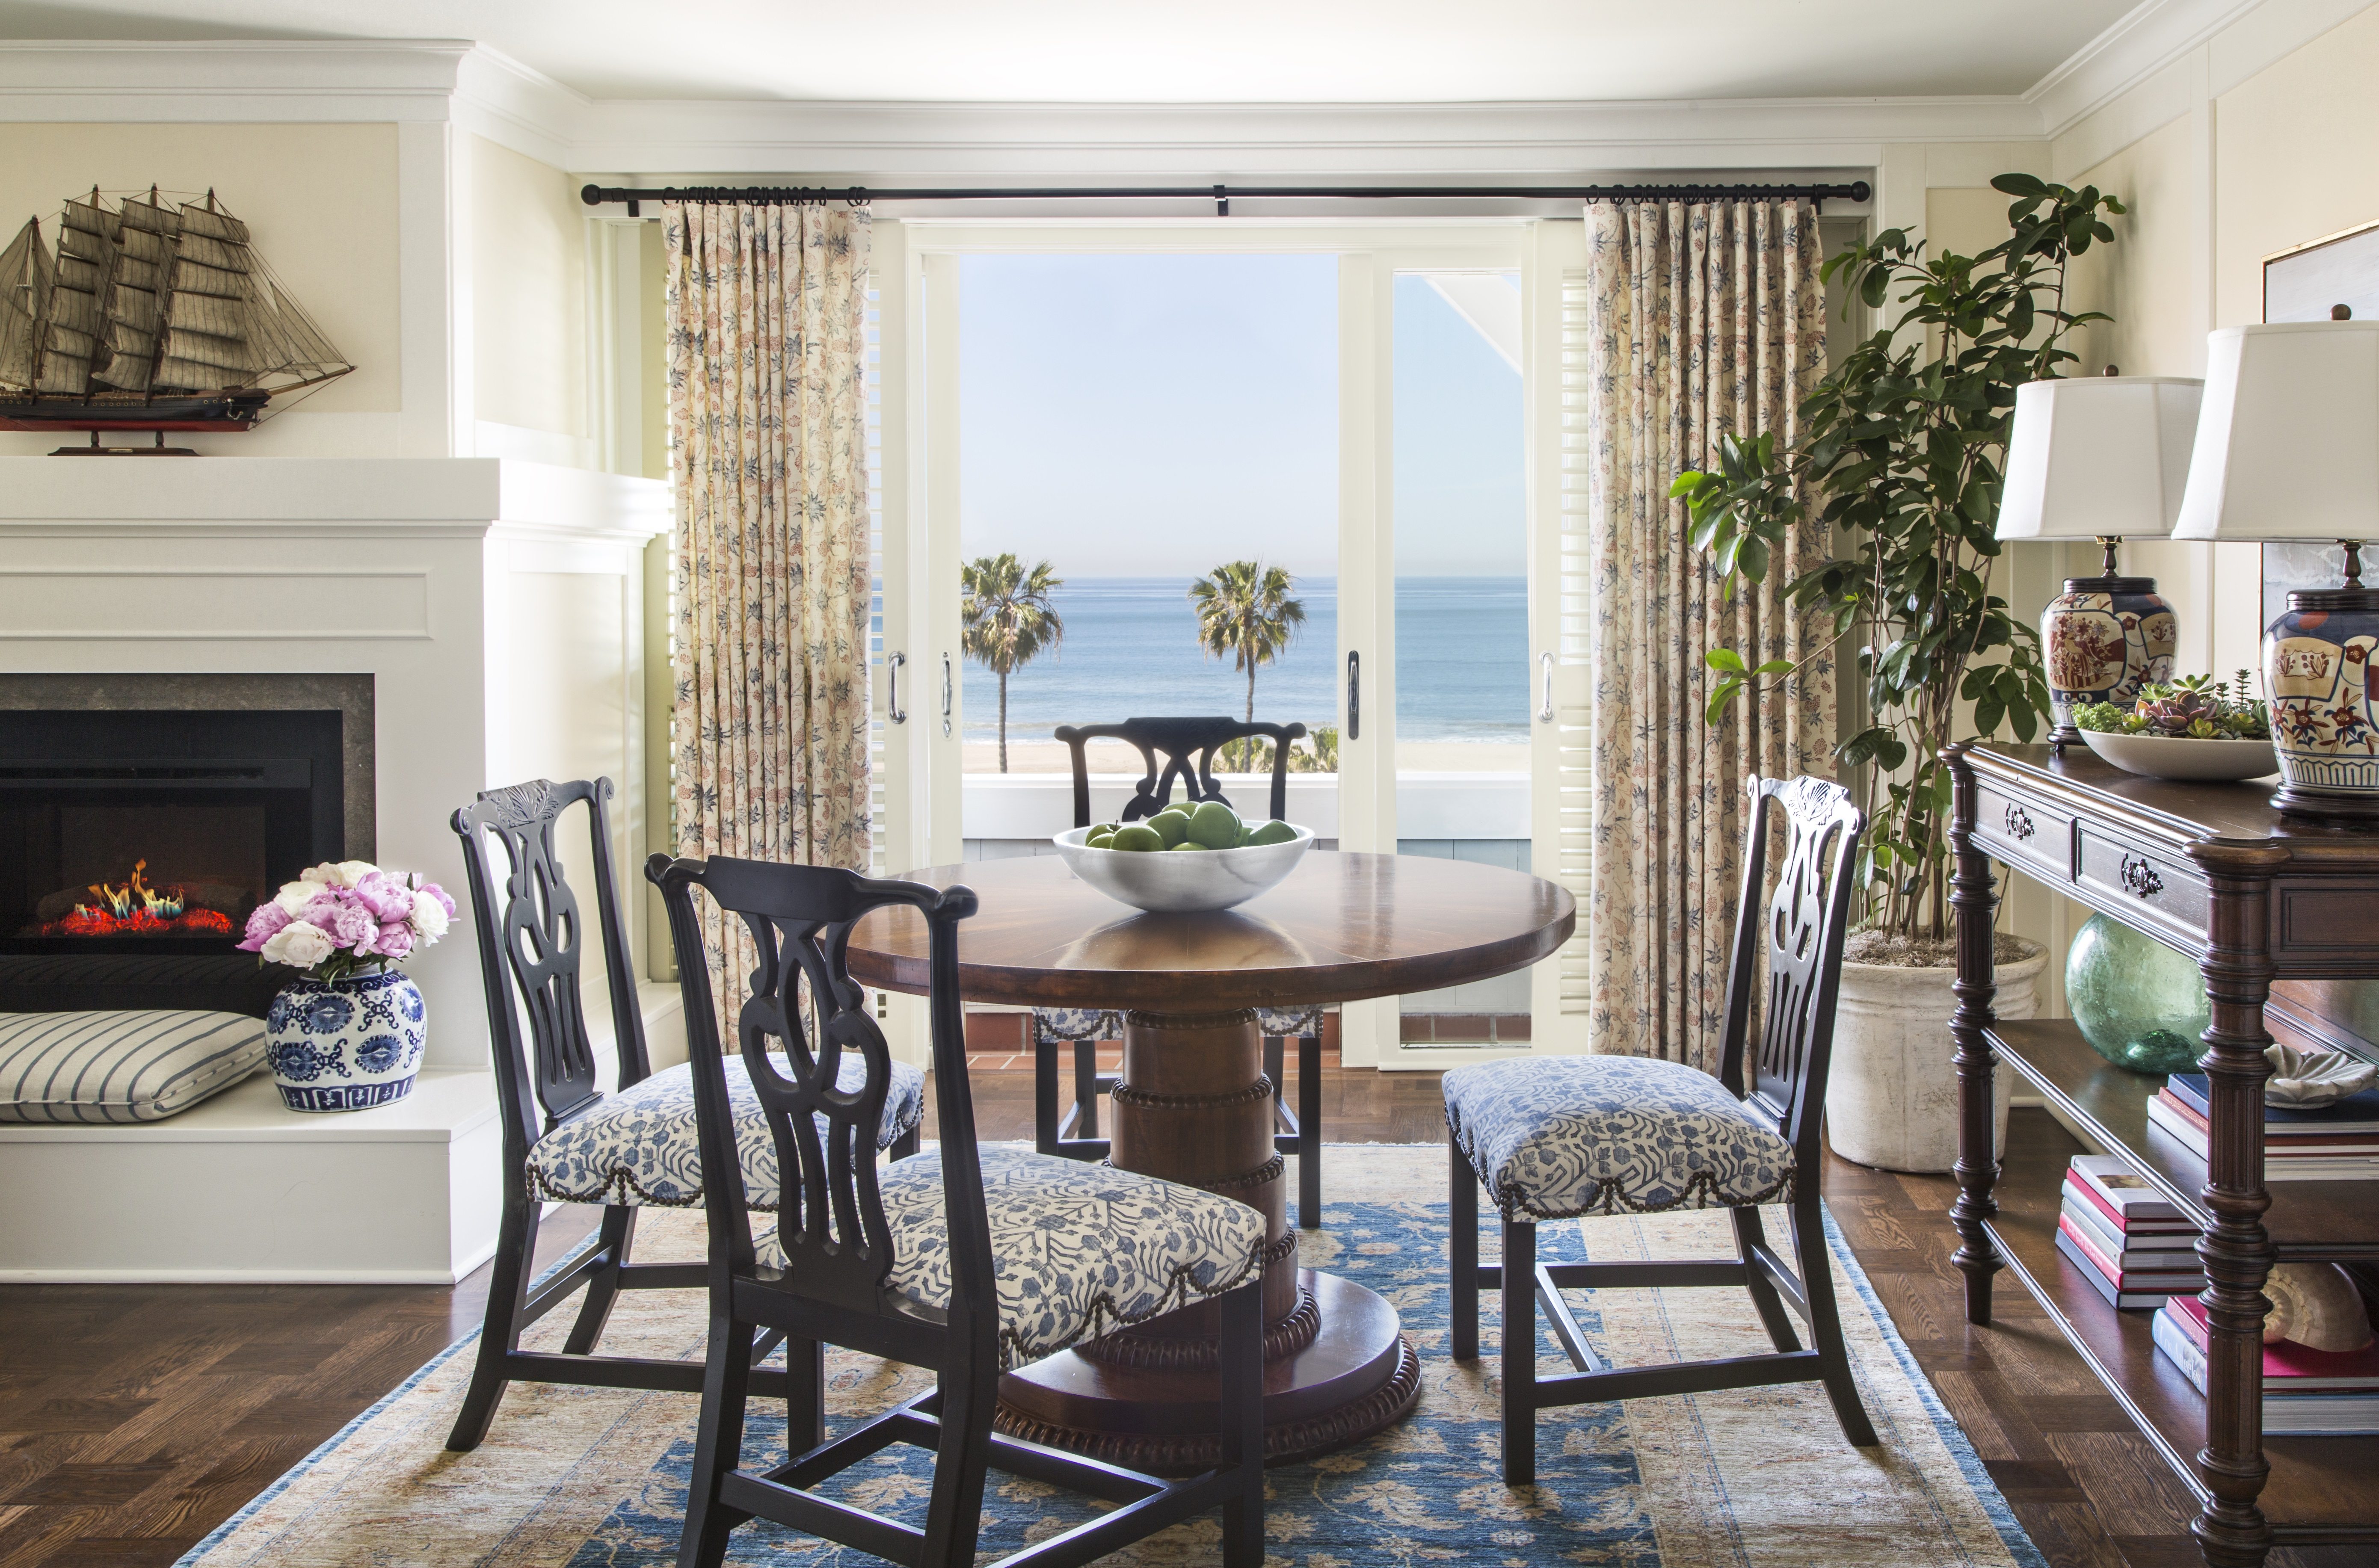 Luxury Day Spa in Santa Monica - ONE Spa | Shutters on the Beach